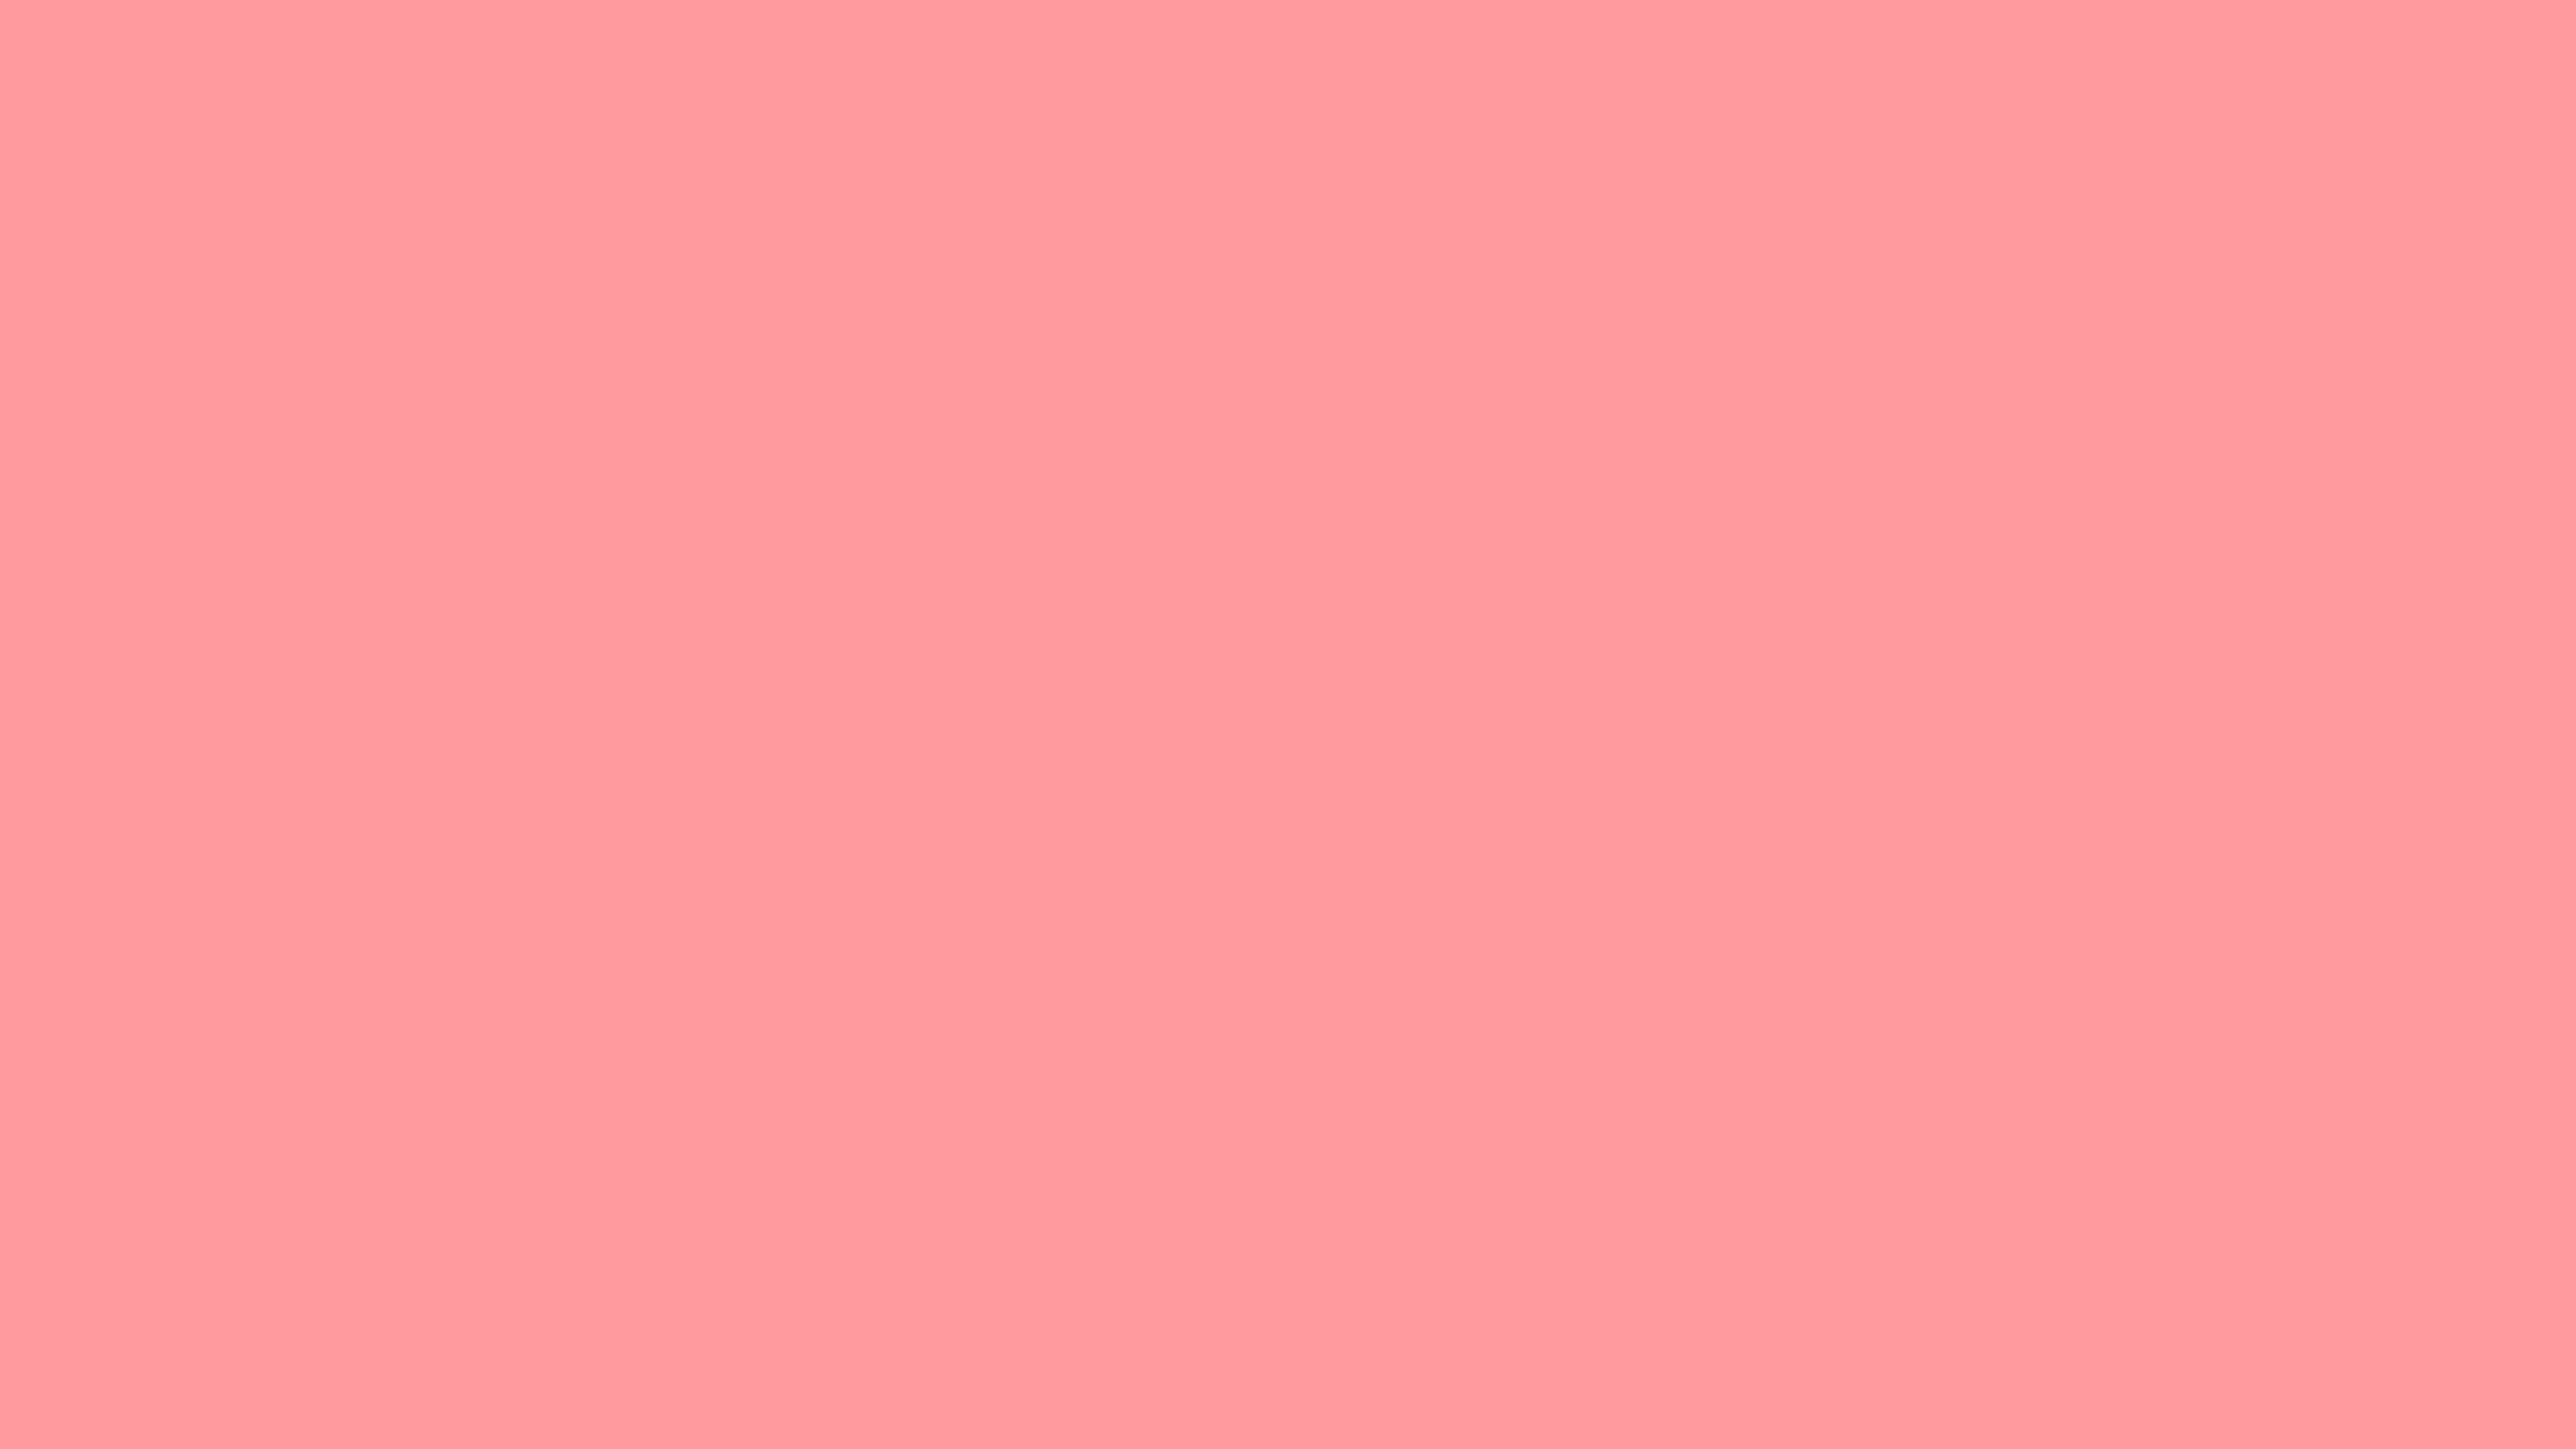 5120x2880 Light Salmon Pink Solid Color Background